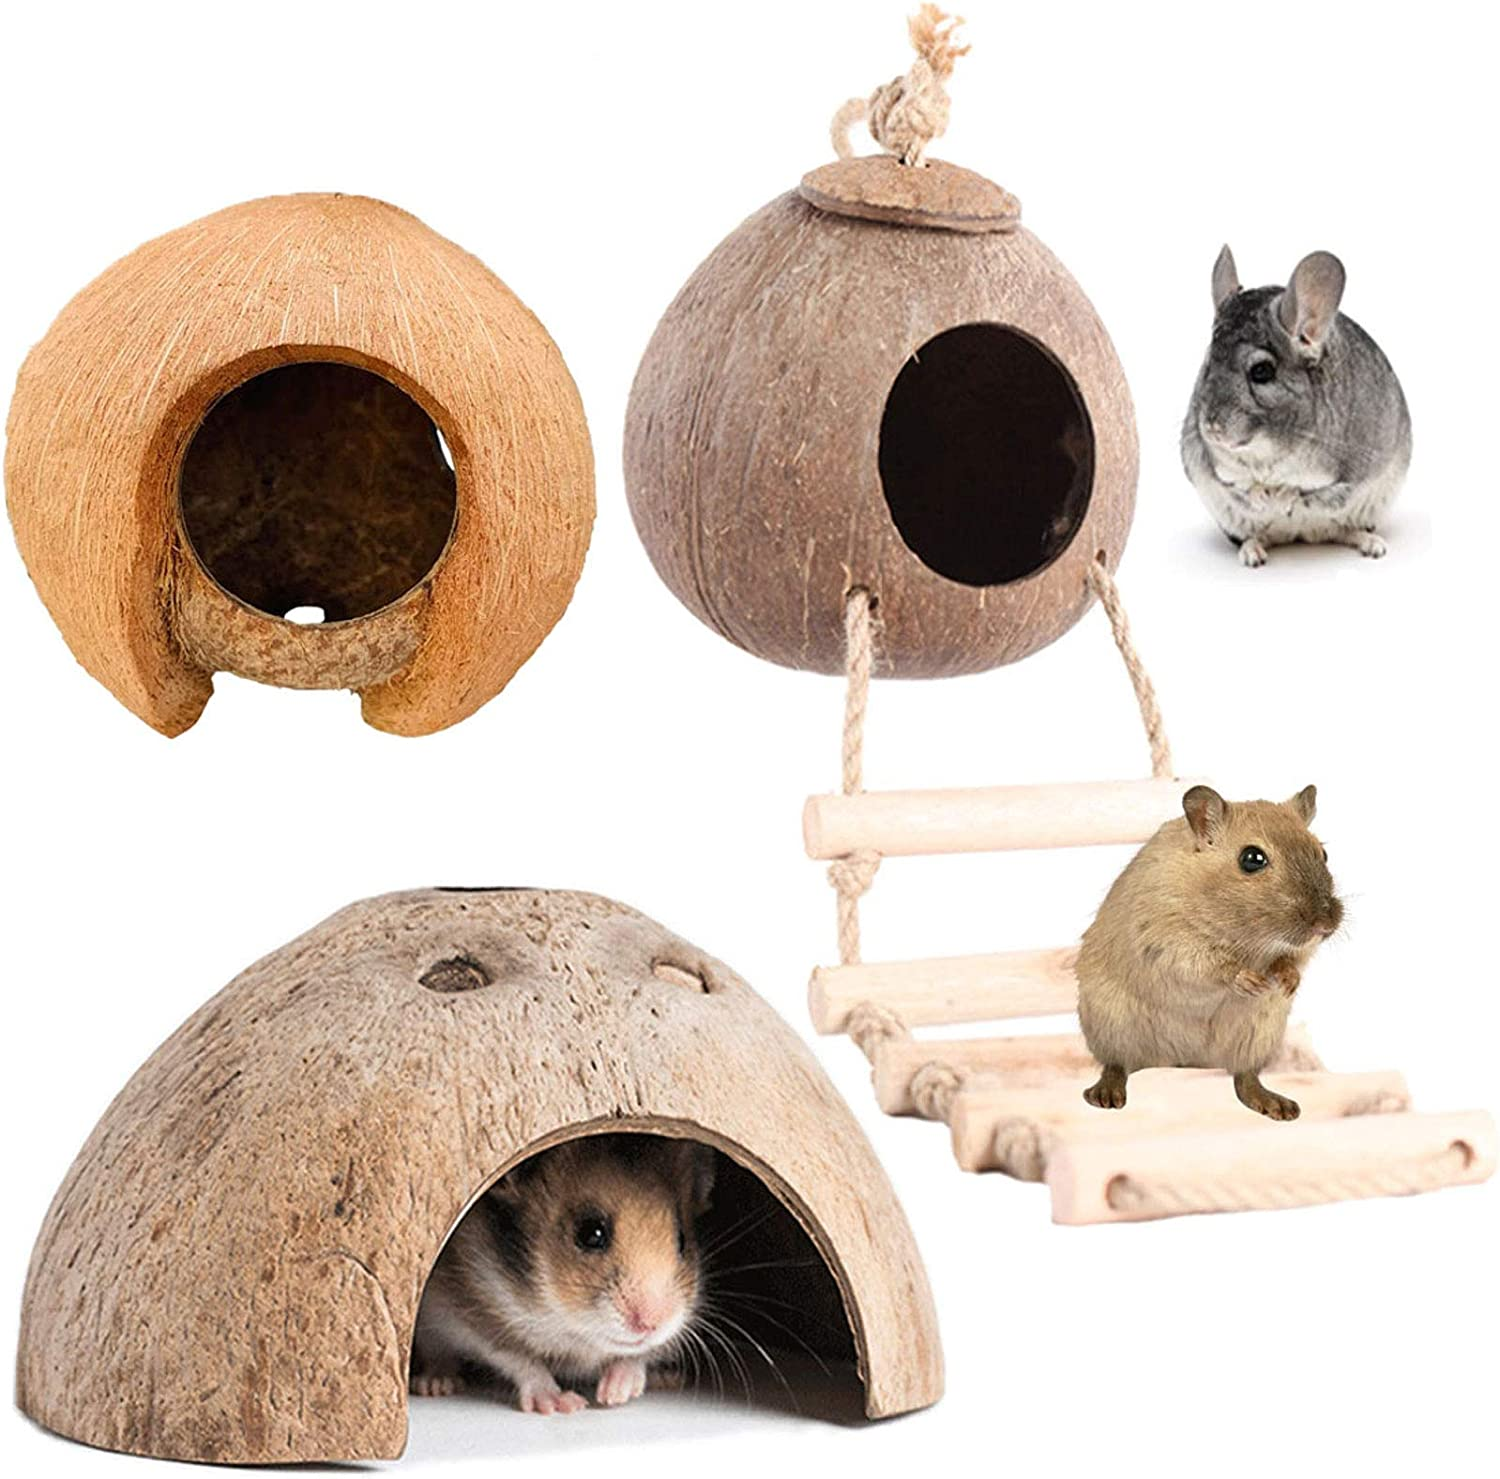 PINVNBY Natural Coconut Hut Hamster Hiding House Pet Cave Small Animal Cage Habitat Decor Hanging Guinea Pig Toys with Ladder for Gerbils Mice Rats Playing Breeding 3PCS